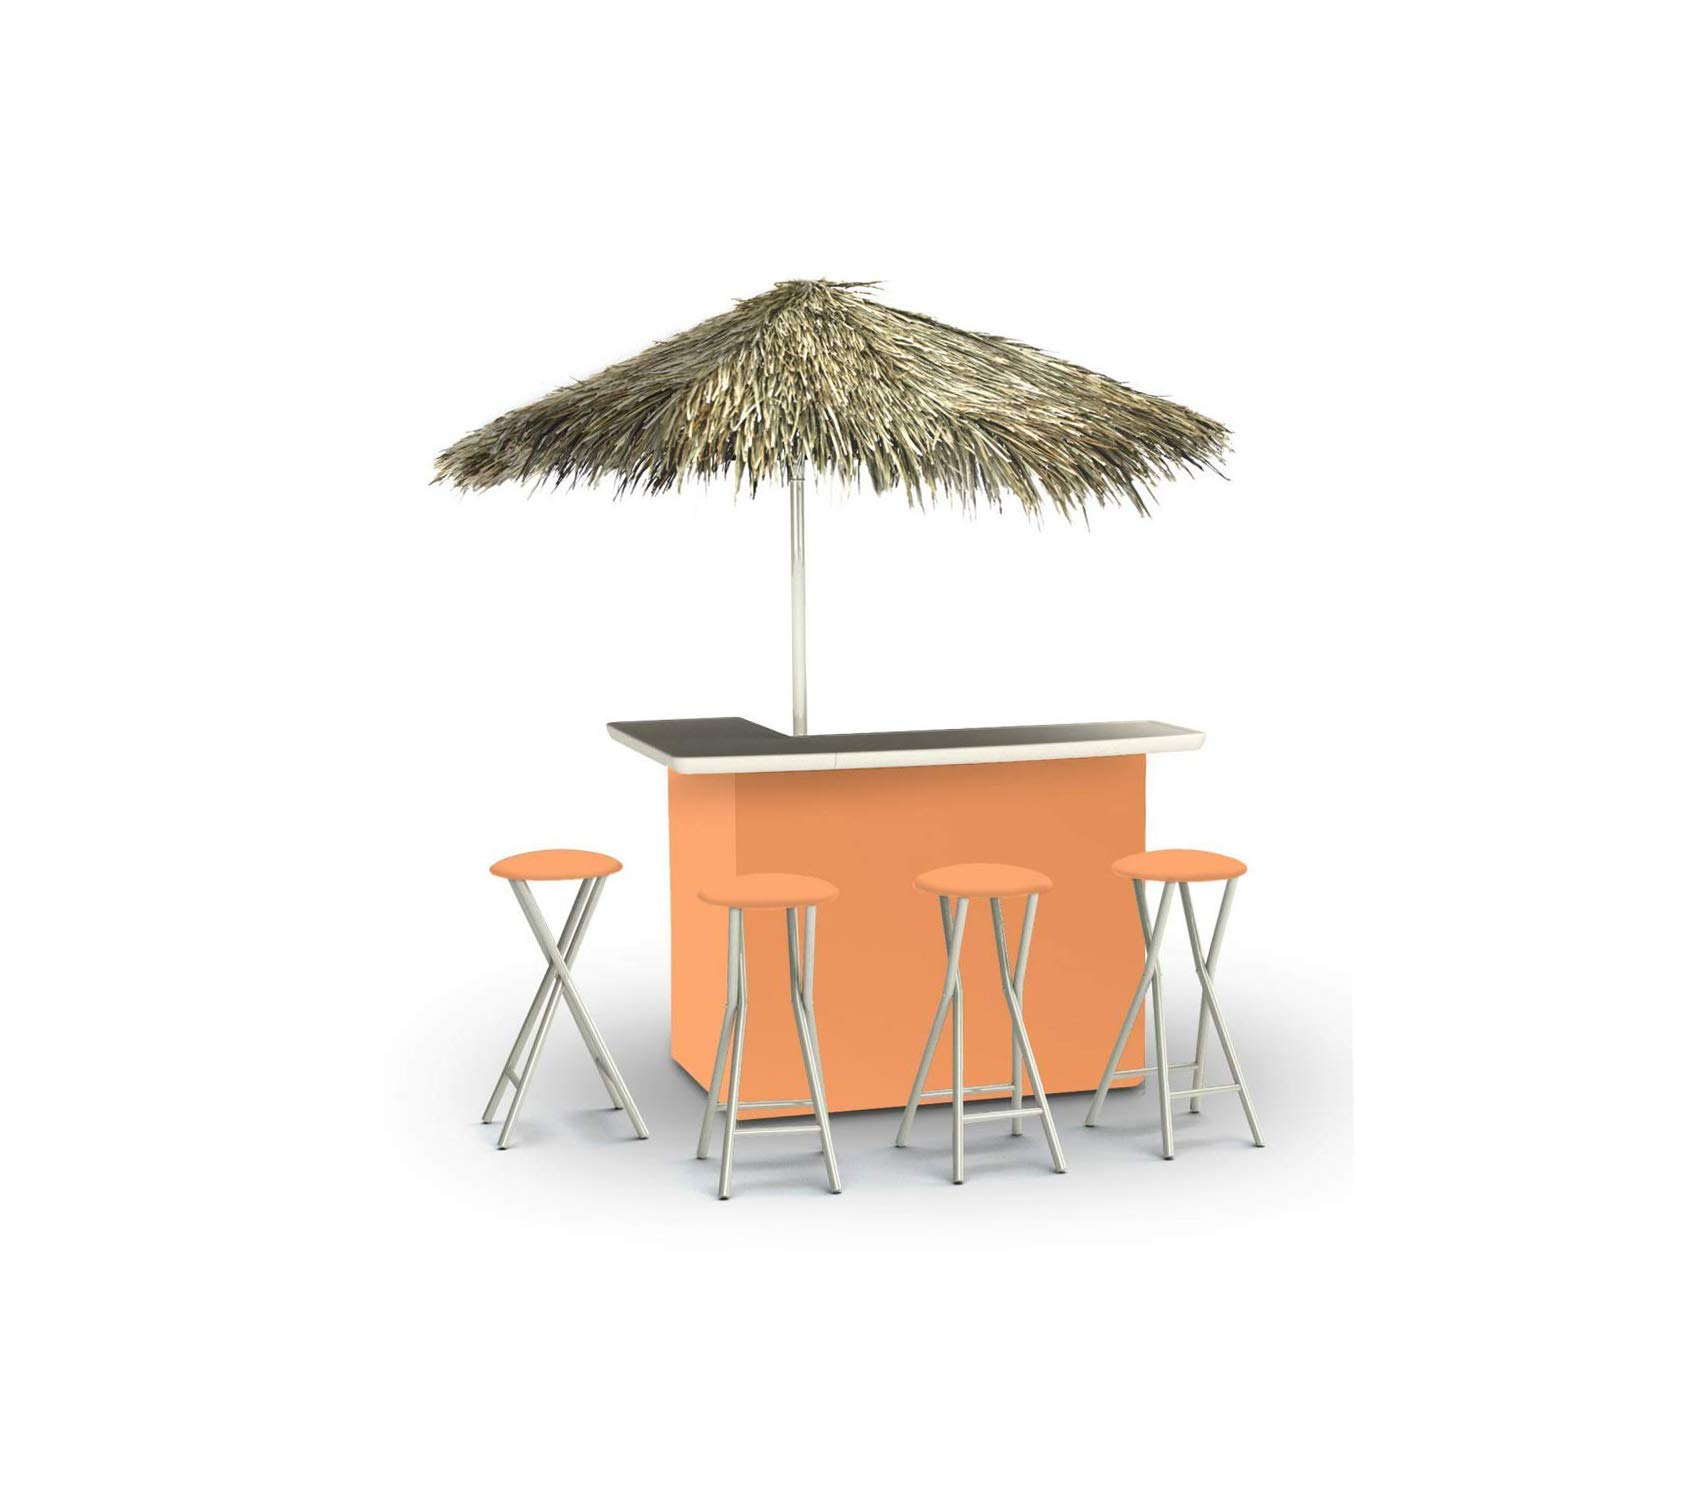 Wood & Style Patio Outdoor Garden Premium Best of Times Portable Deluxe Bar, Solid Peach - Palapa